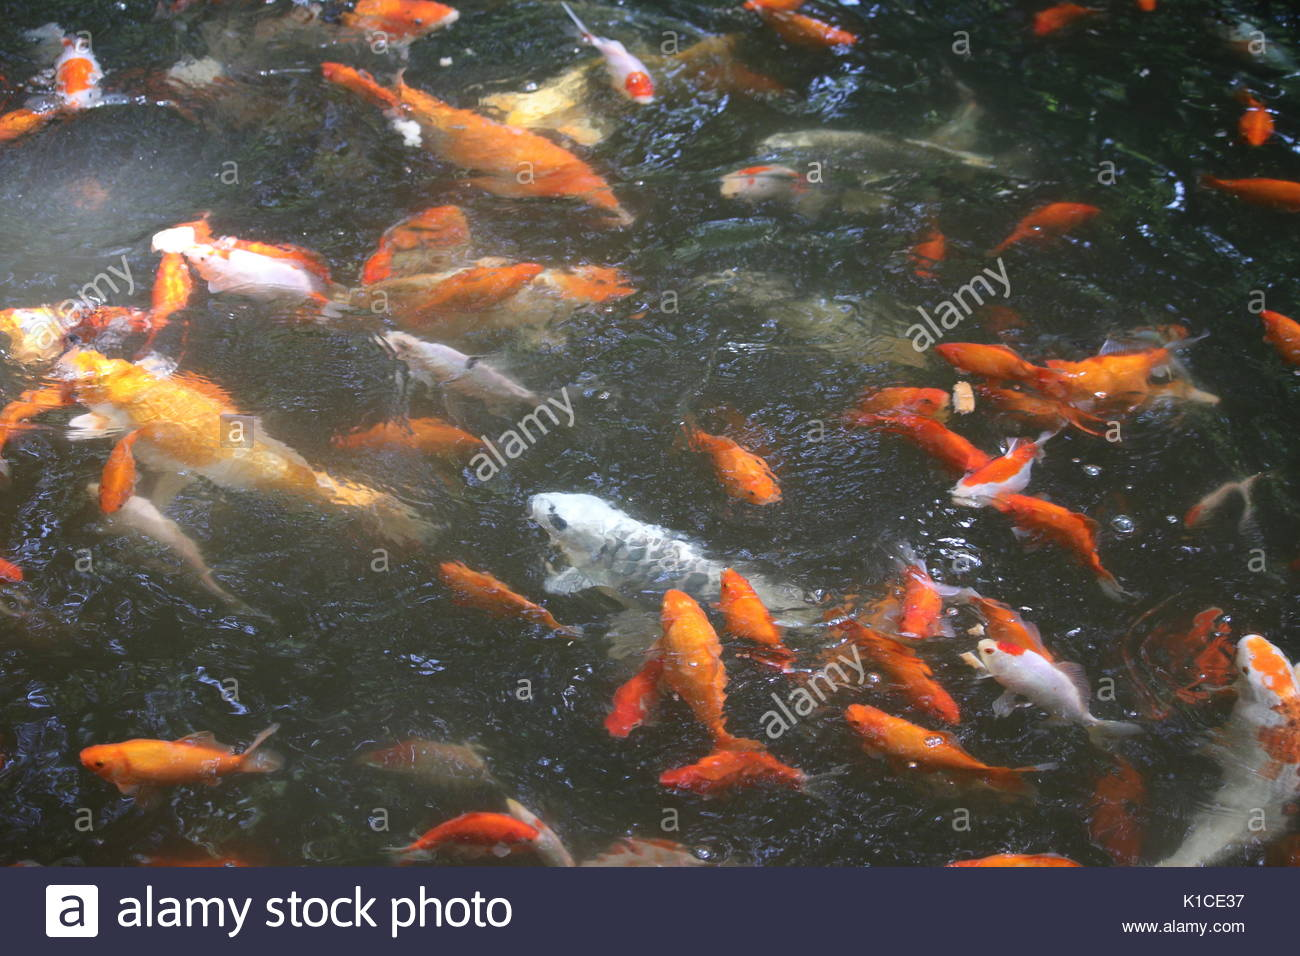 Orange white multi colored koi carp stock photos orange for Orange koi carp